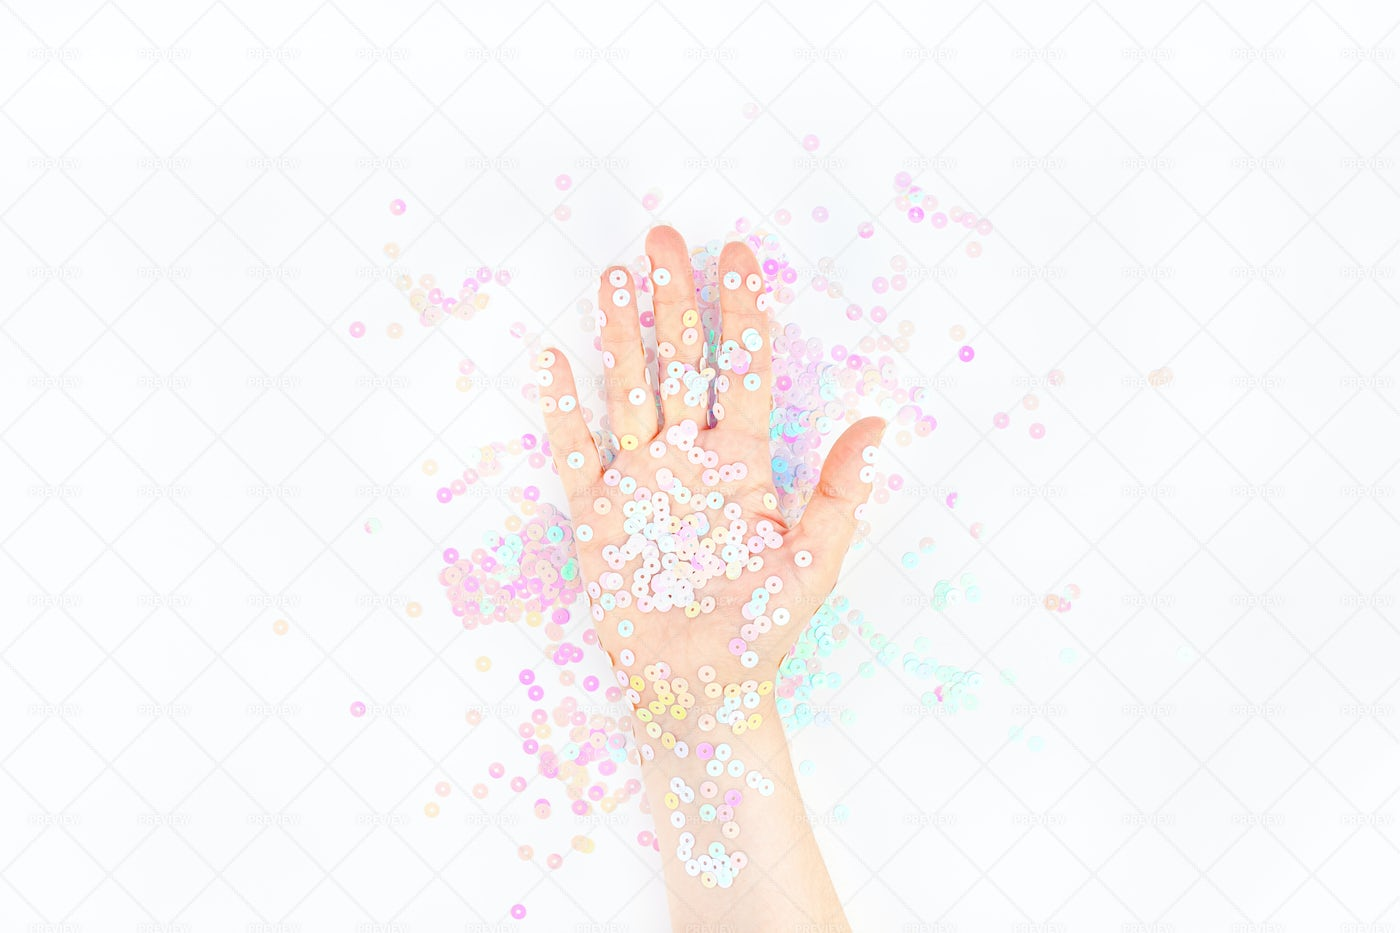 Pastel Confetti In Woman's Hand: Stock Photos